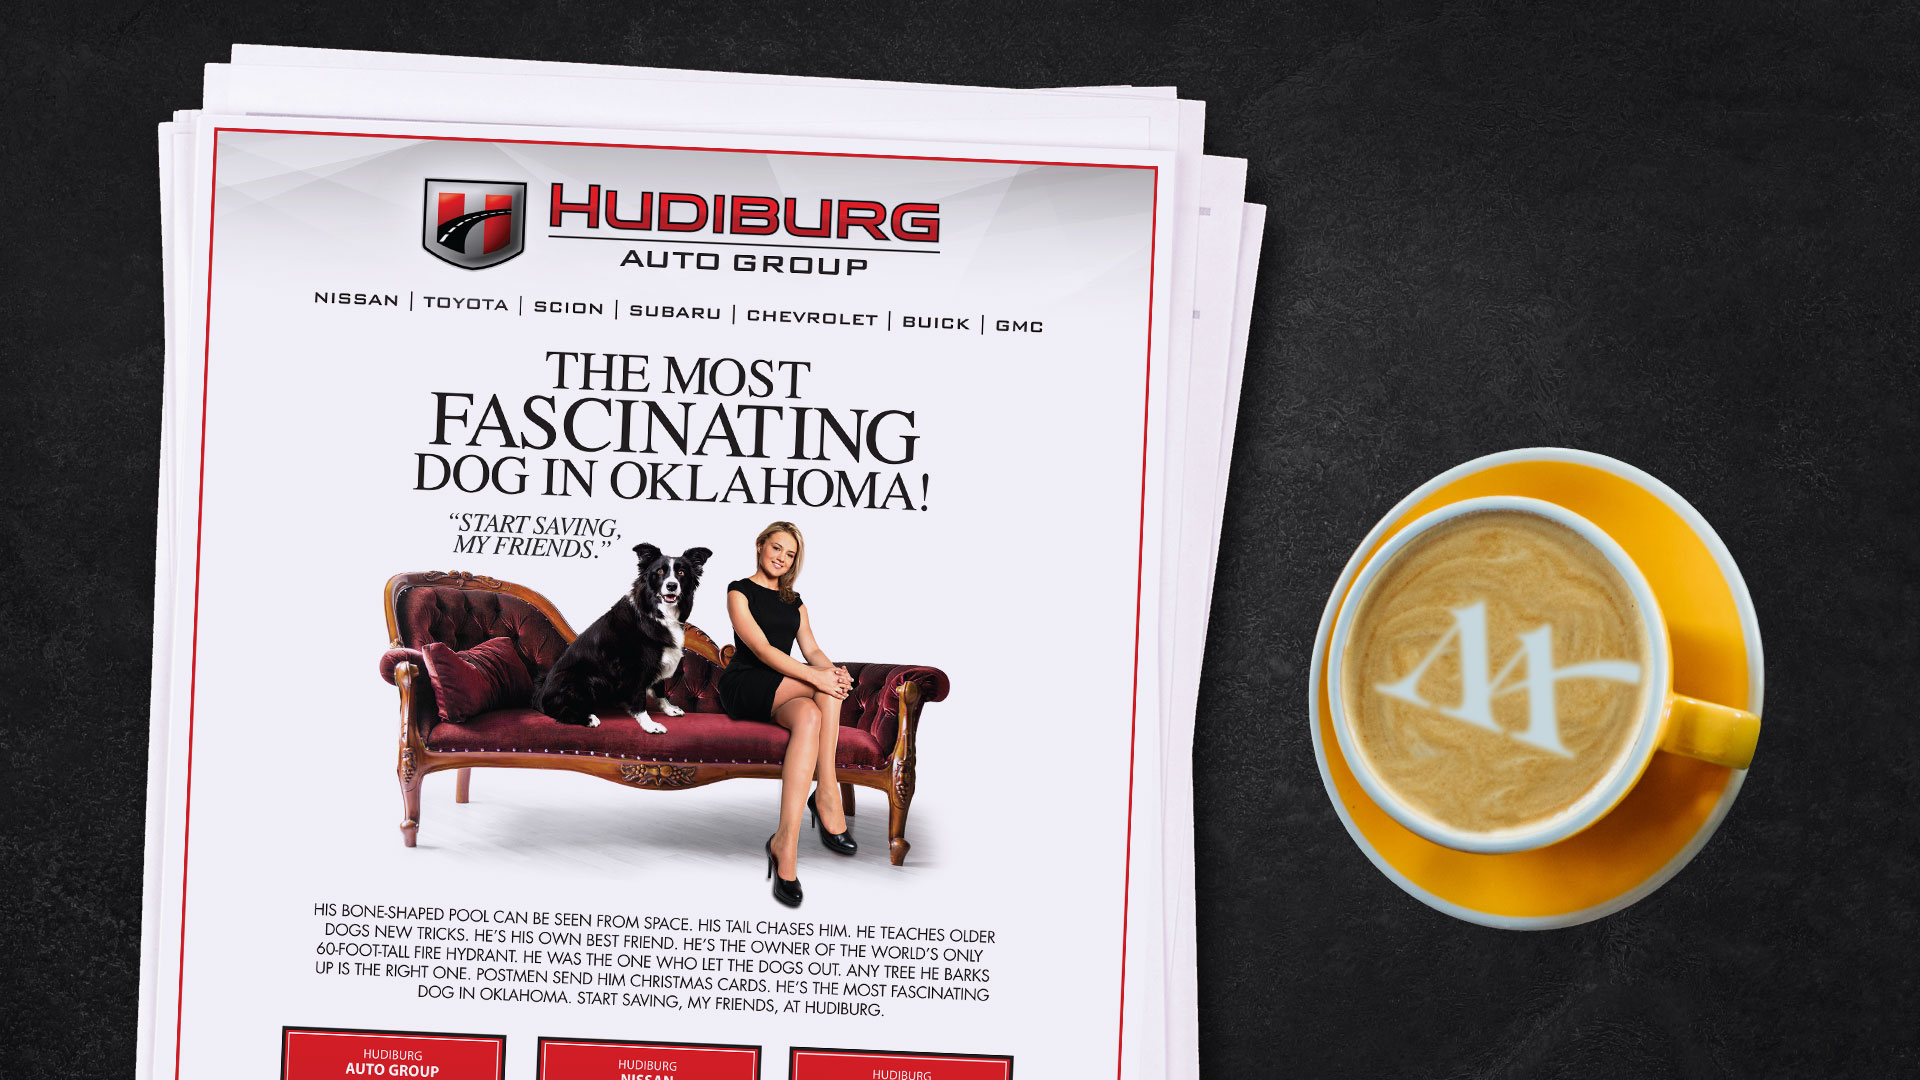 Newspaper Ad: Hudiburg Autogroup The Most Interesting Dog